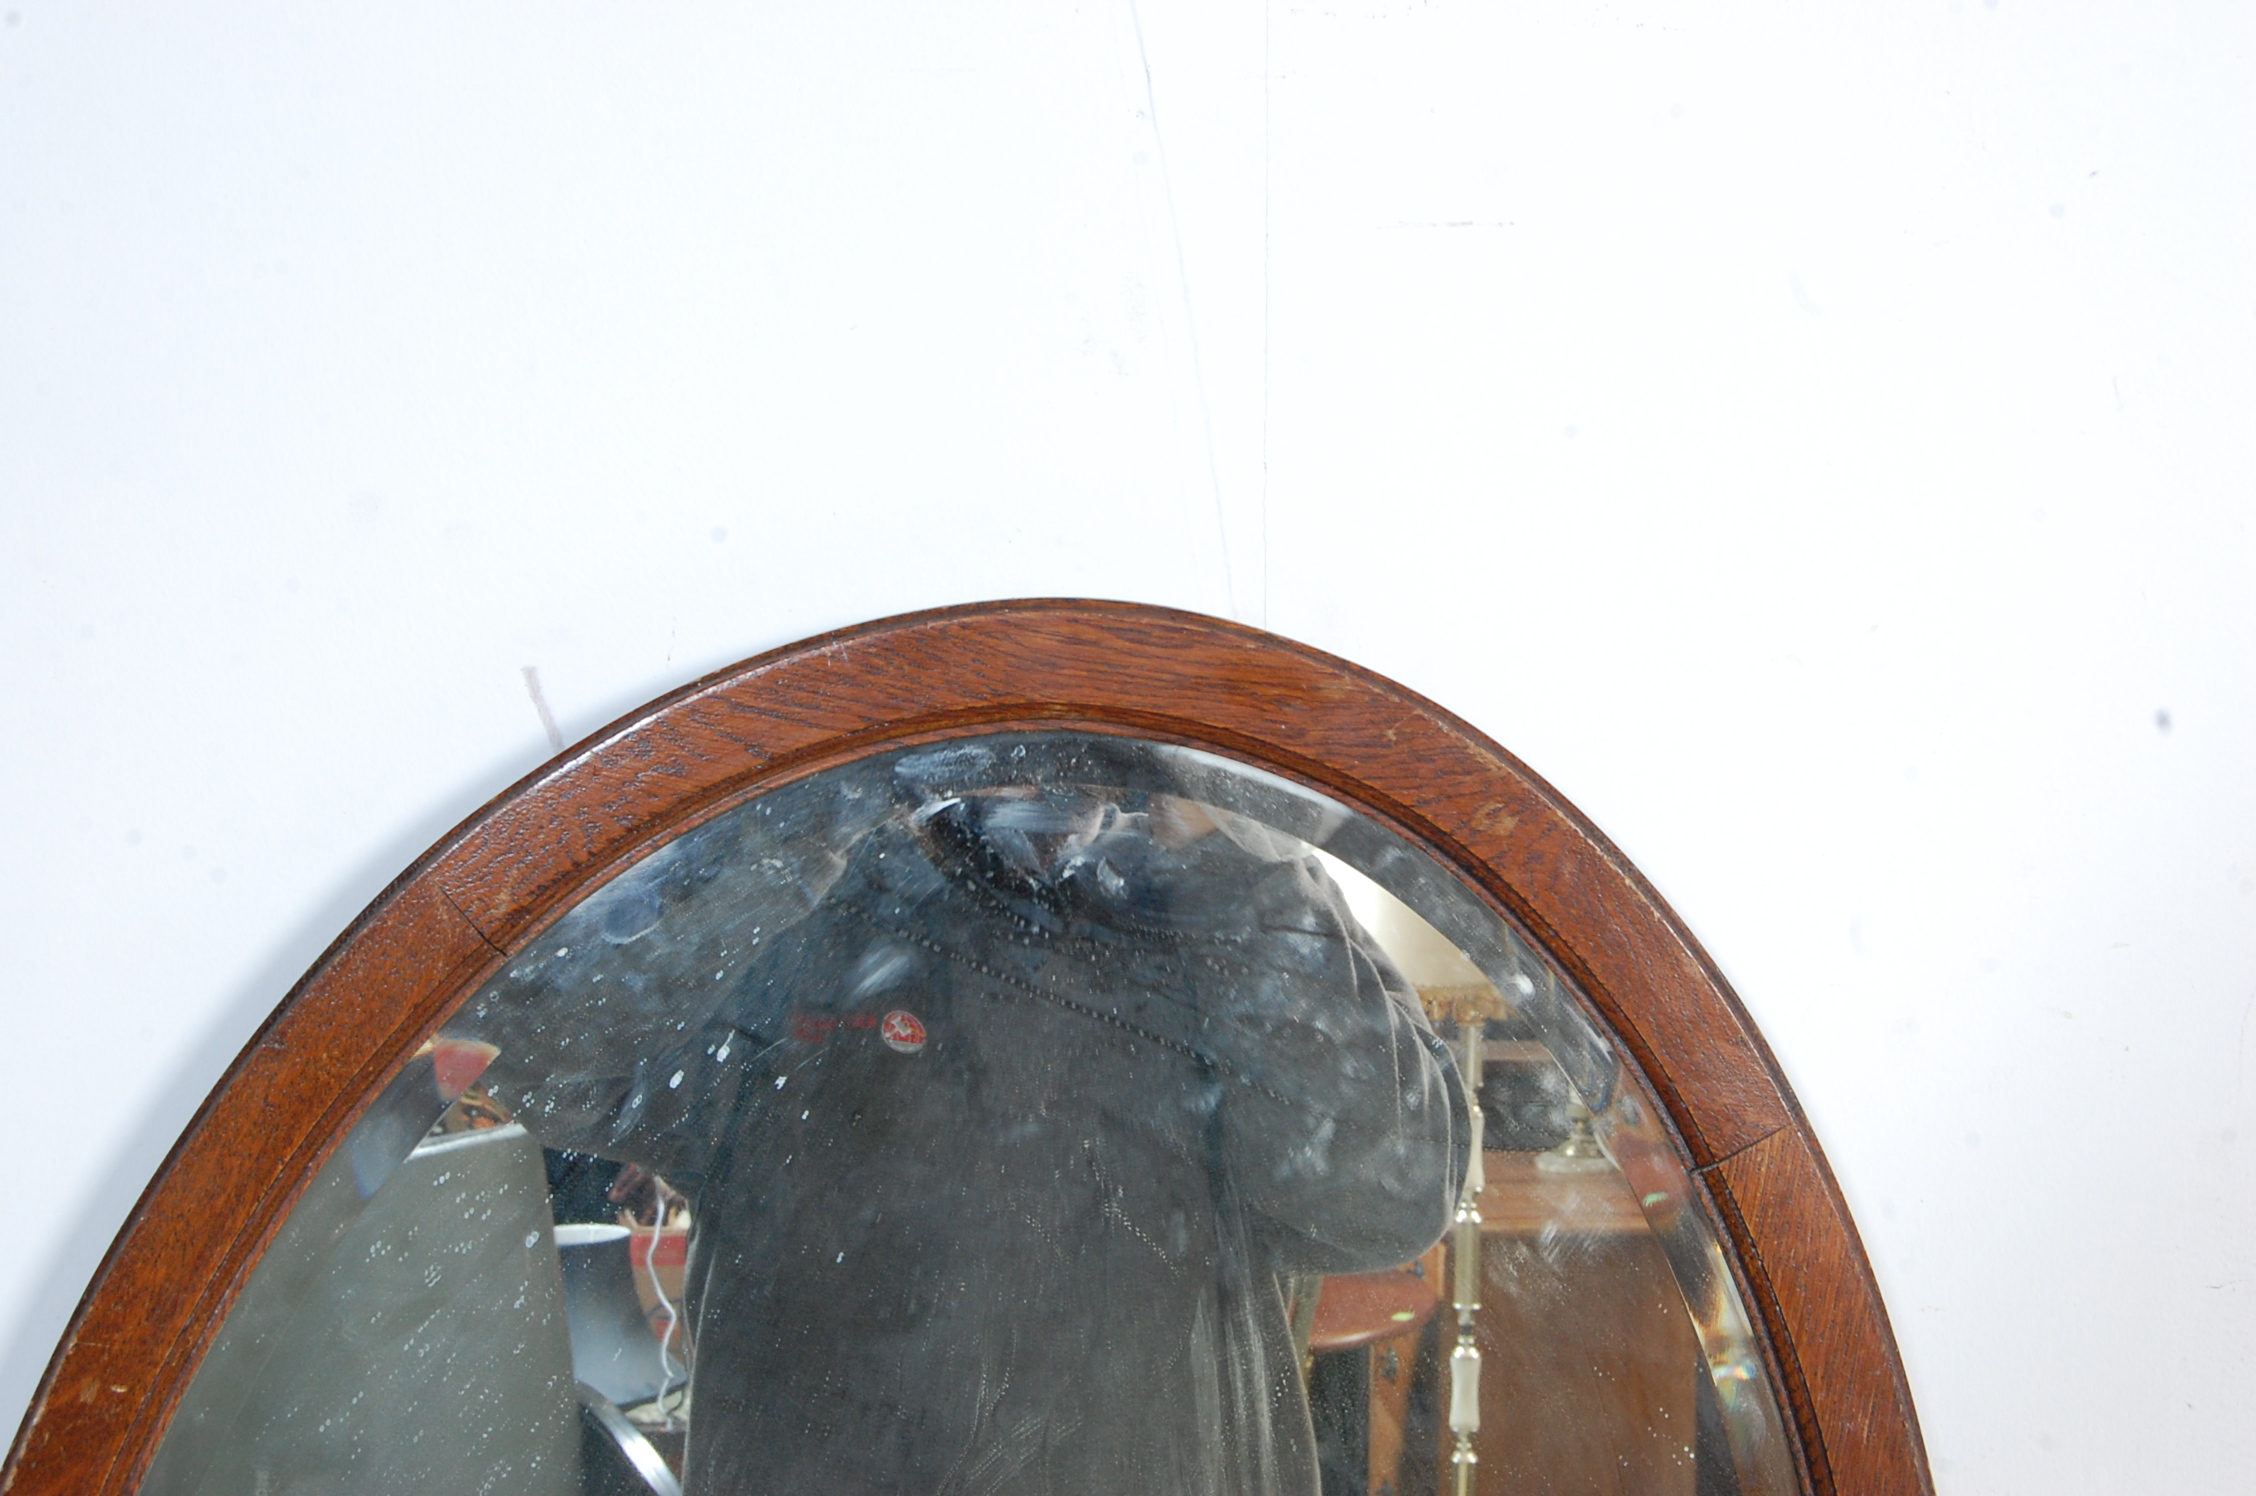 1940'S OAK DROP LEAF DINING TABLE AND OVAL WALL MIRROR - Image 2 of 6